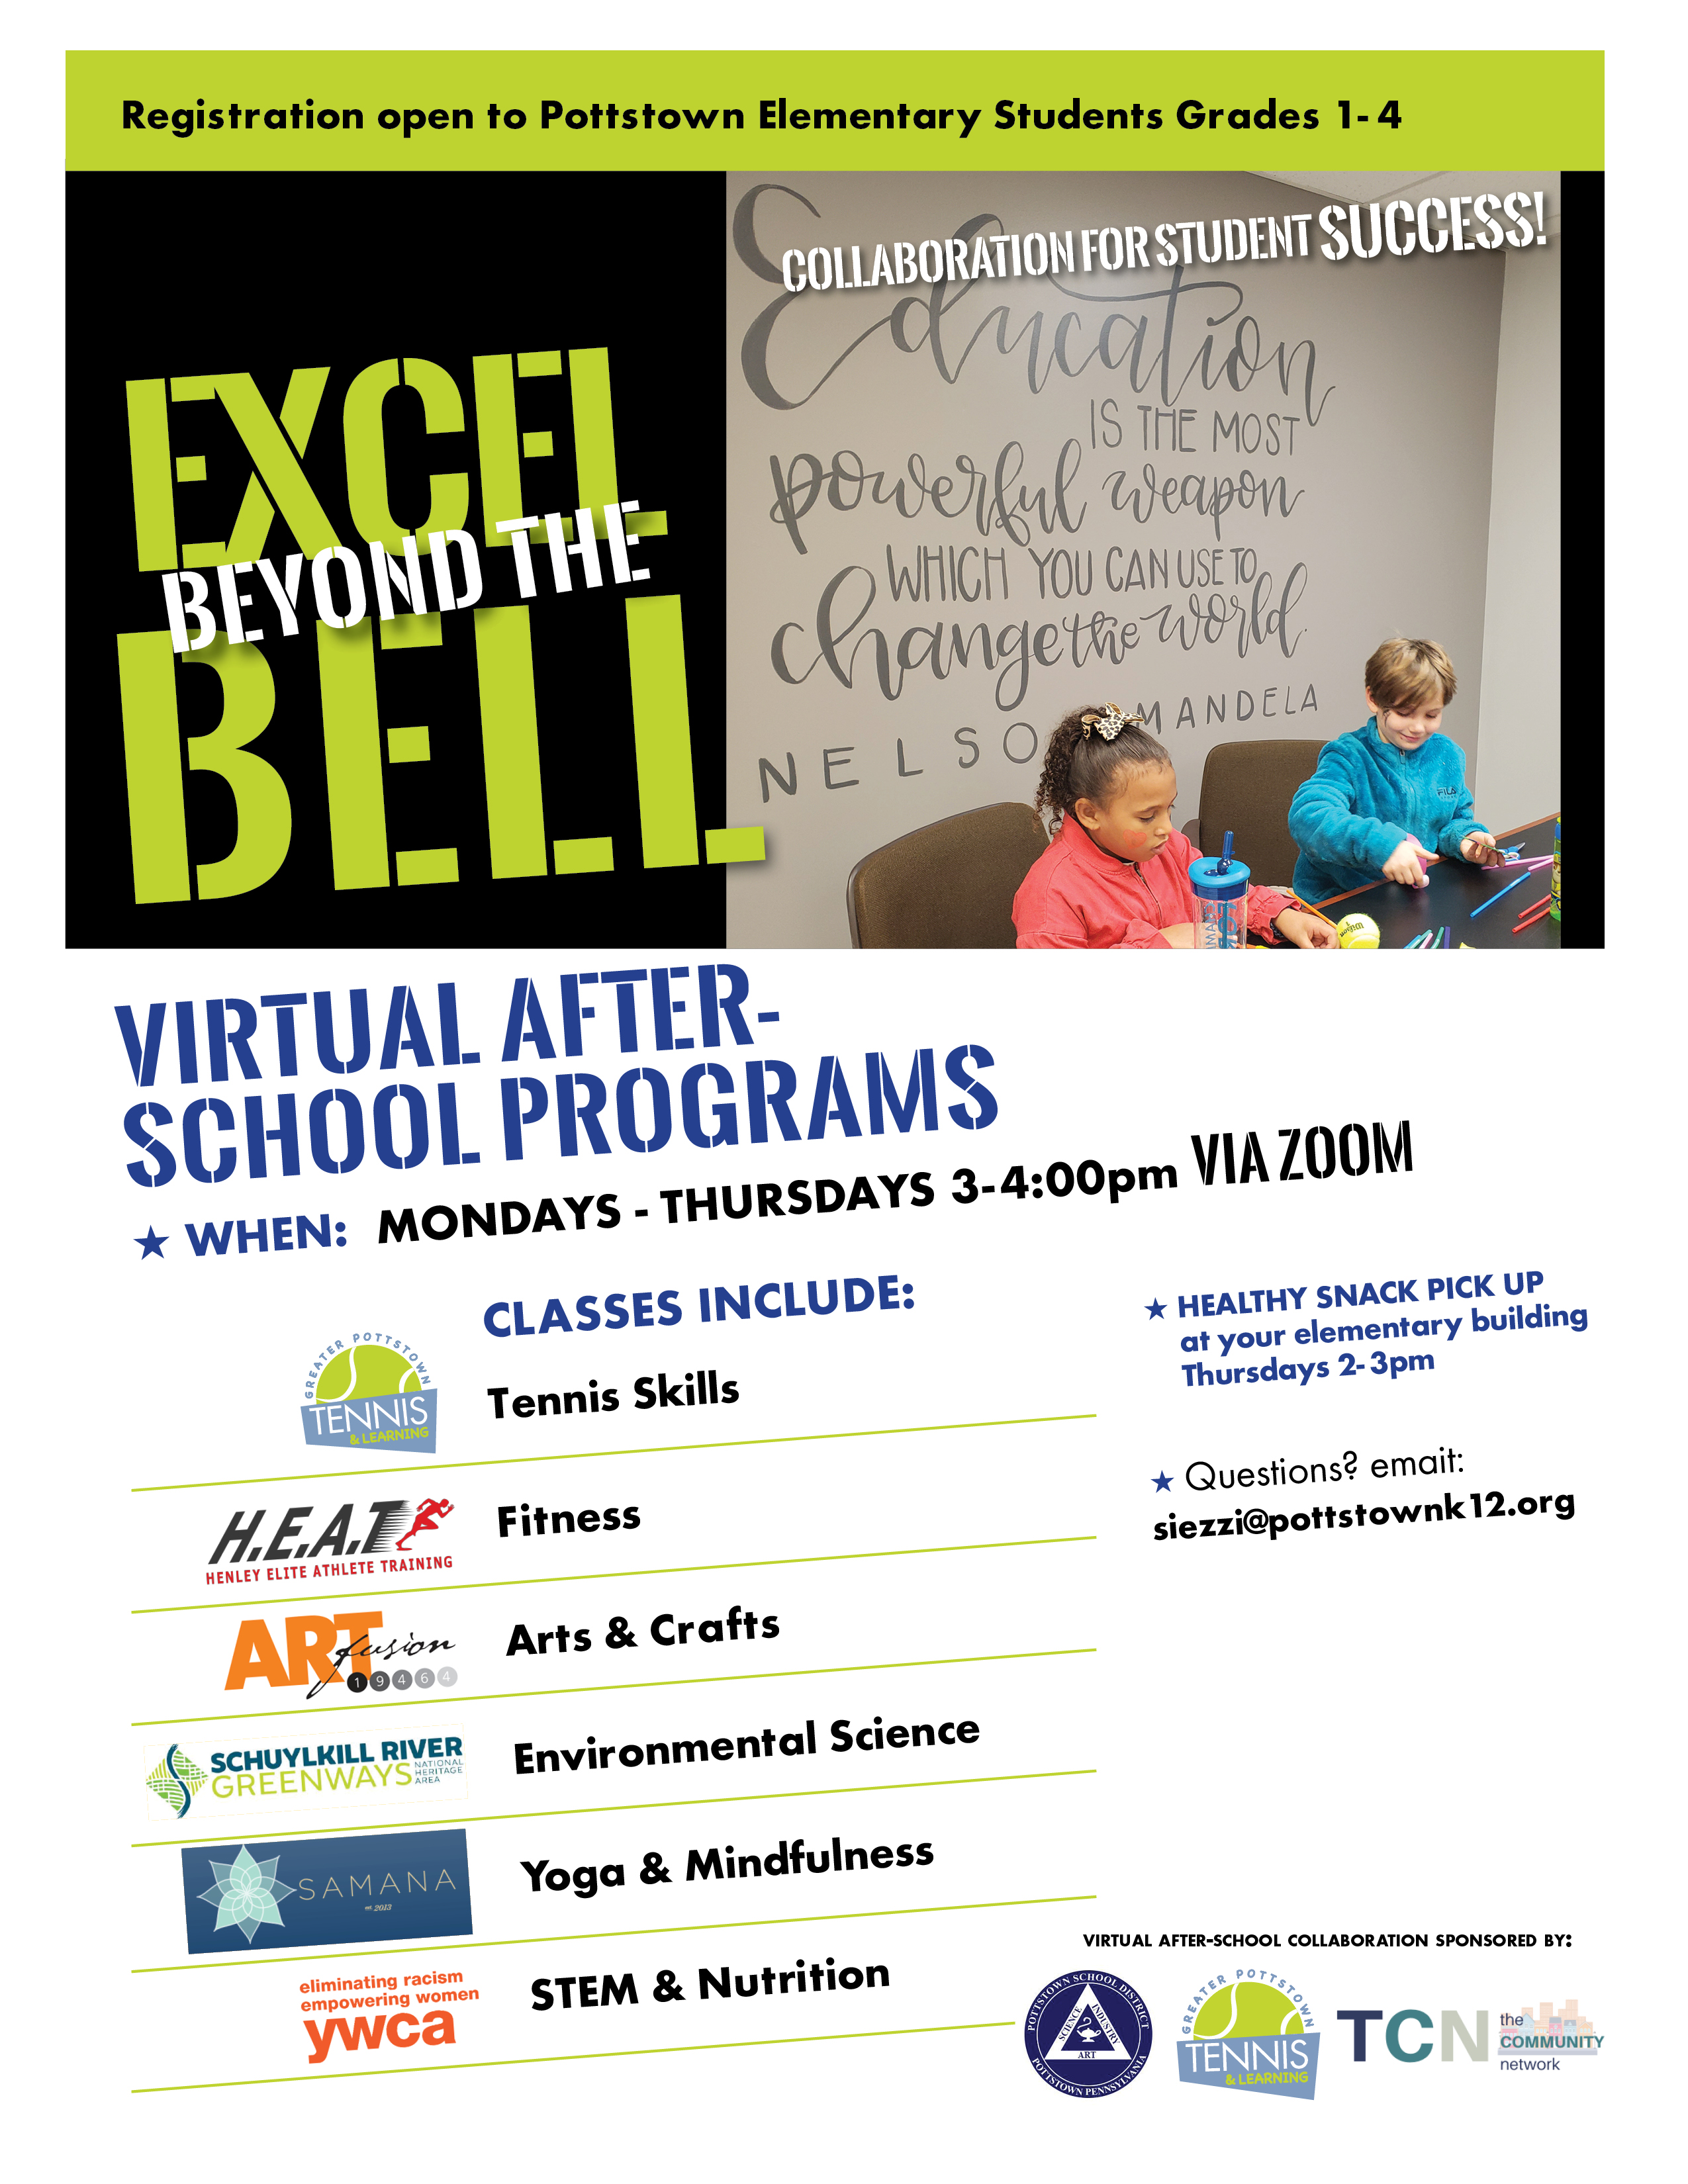 EXCEL BEYOND THE BELL